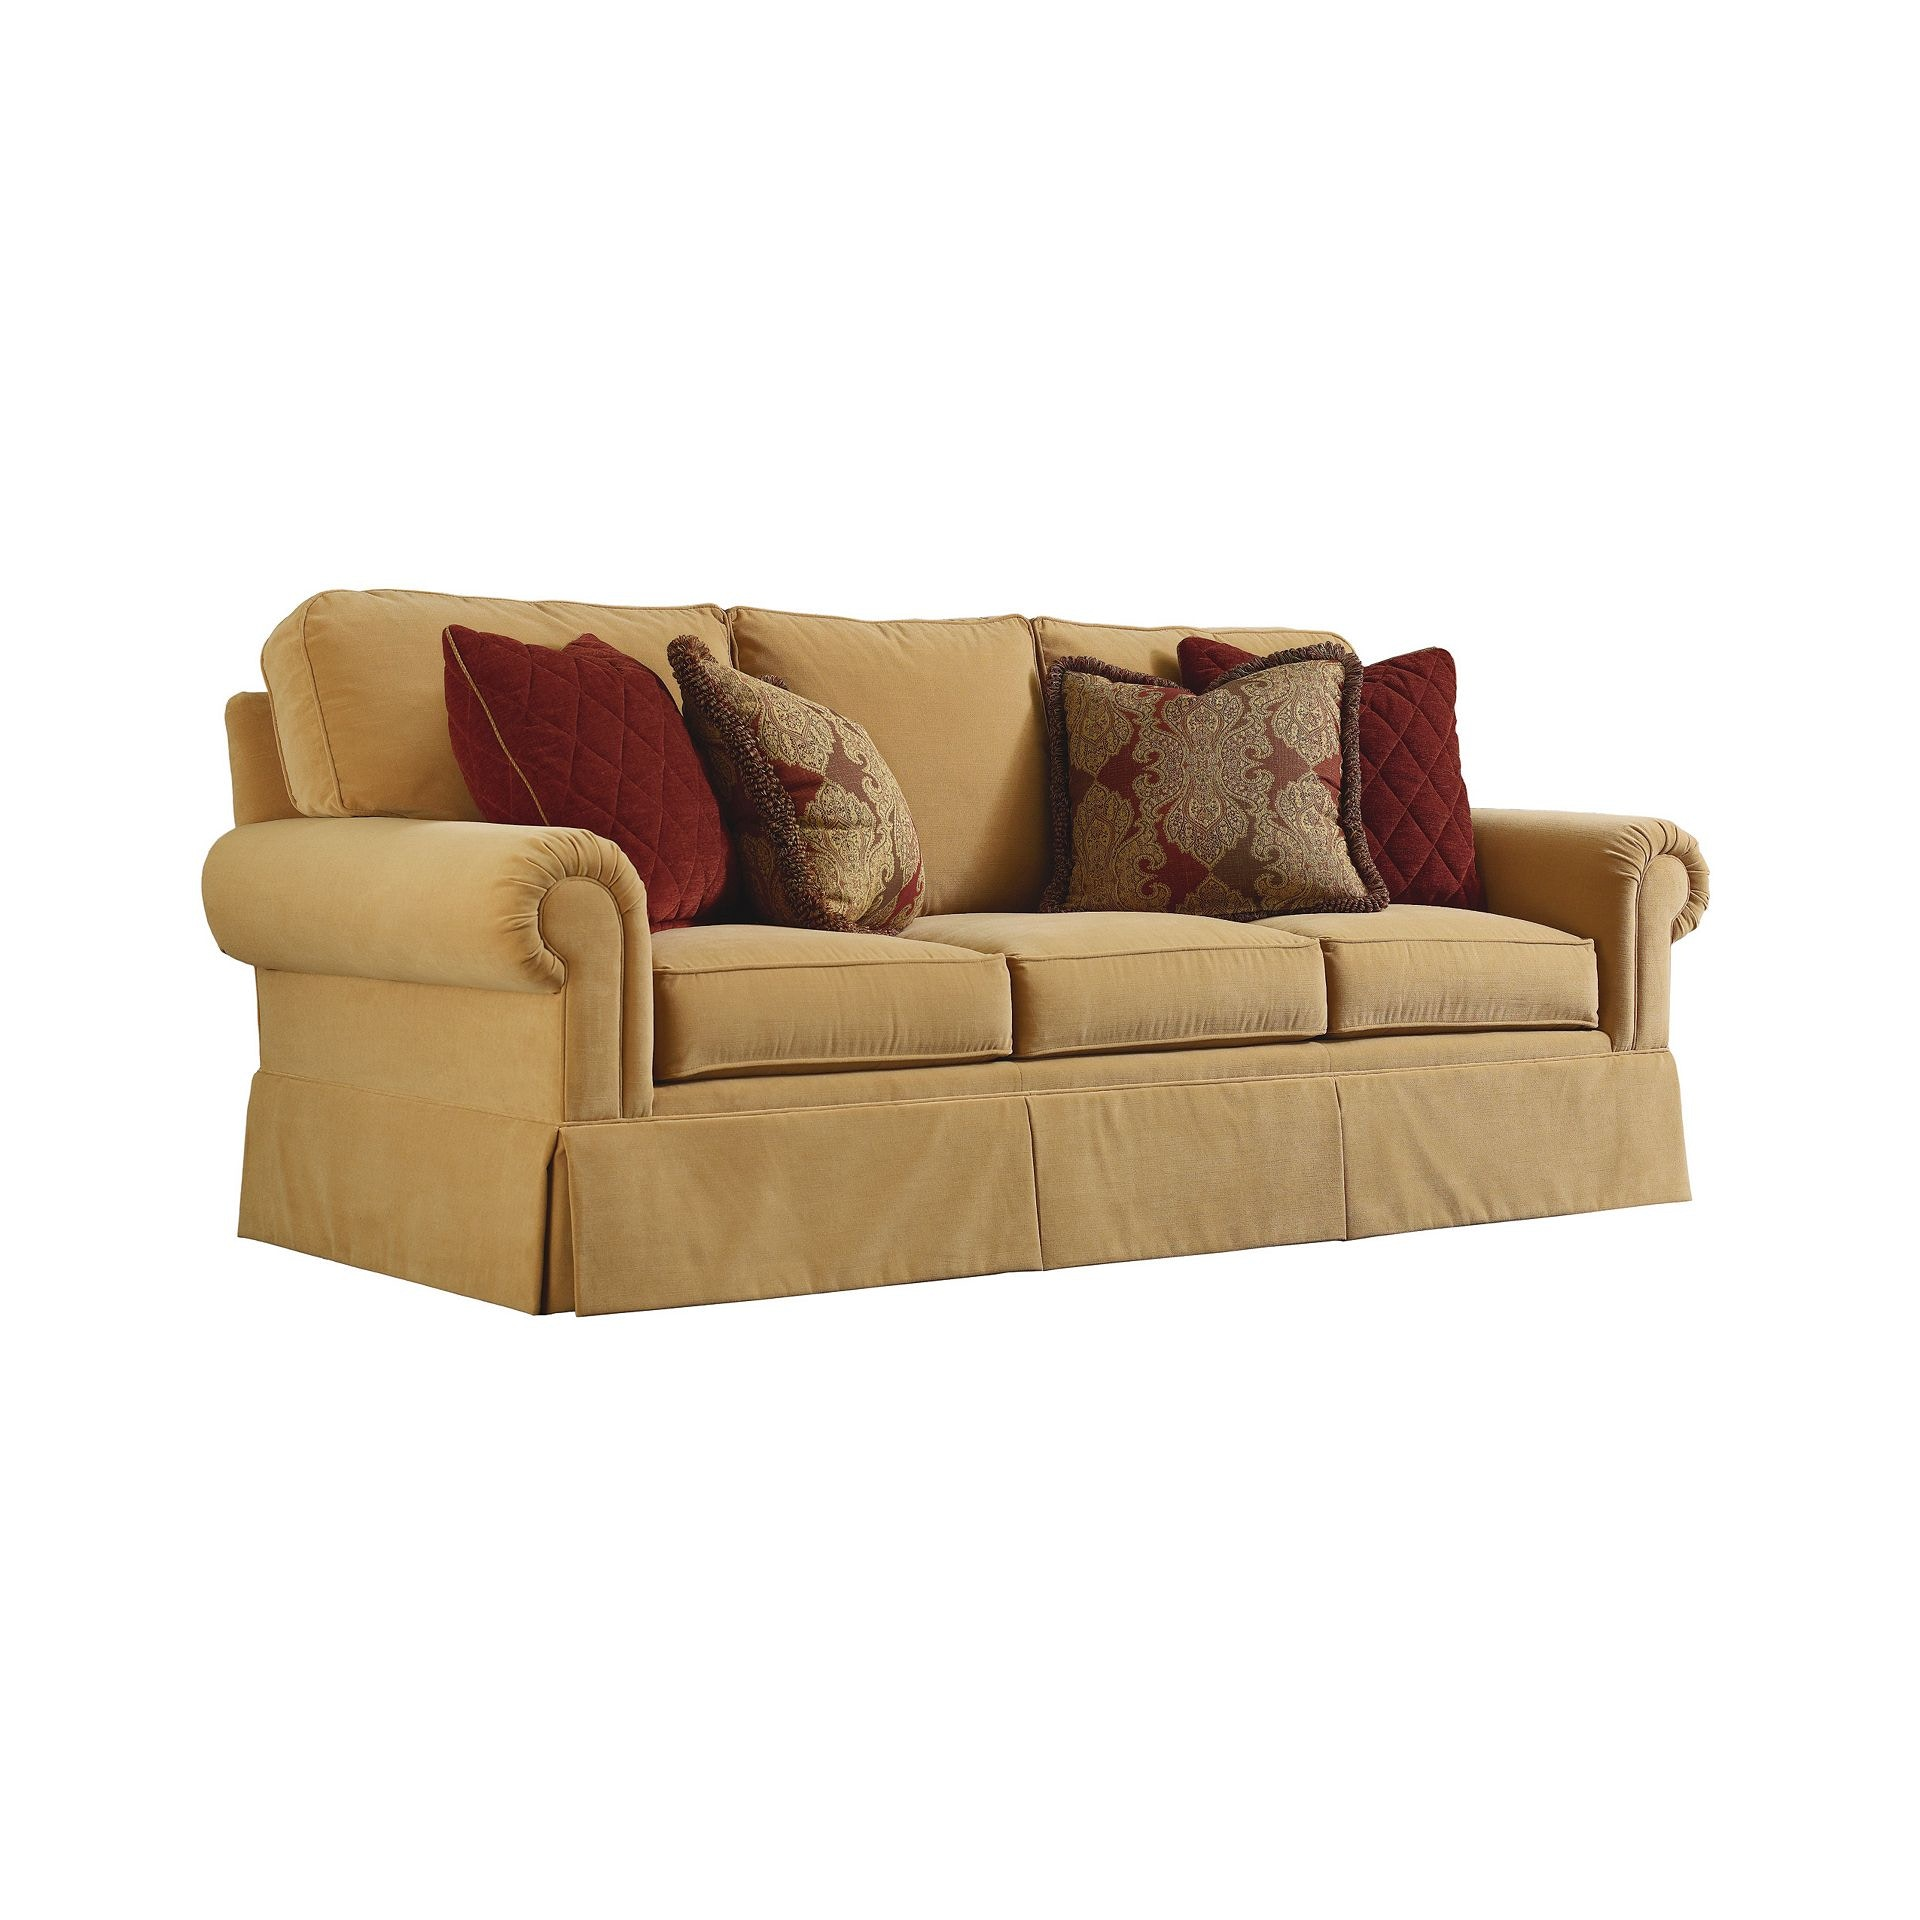 henredon sofa fabrics cork furniture h2700 c 1 living room fireside custom upholstery is handmade and some slight variances in dimensions are normal wood finishes fabric colors may vary